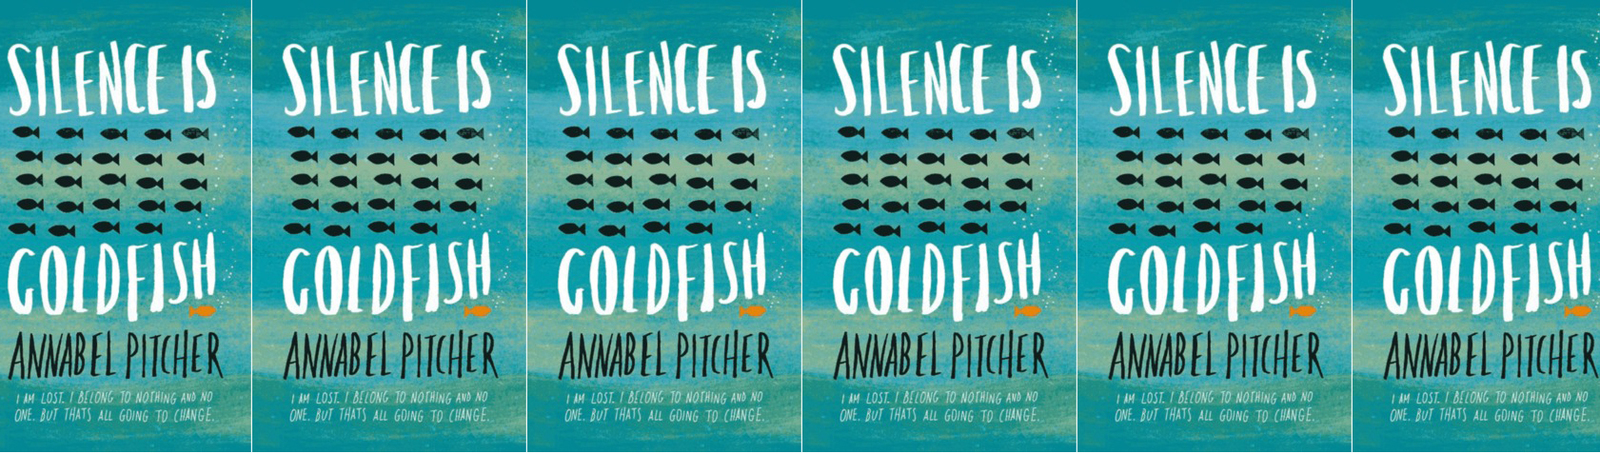 Silence is goldfich hack image